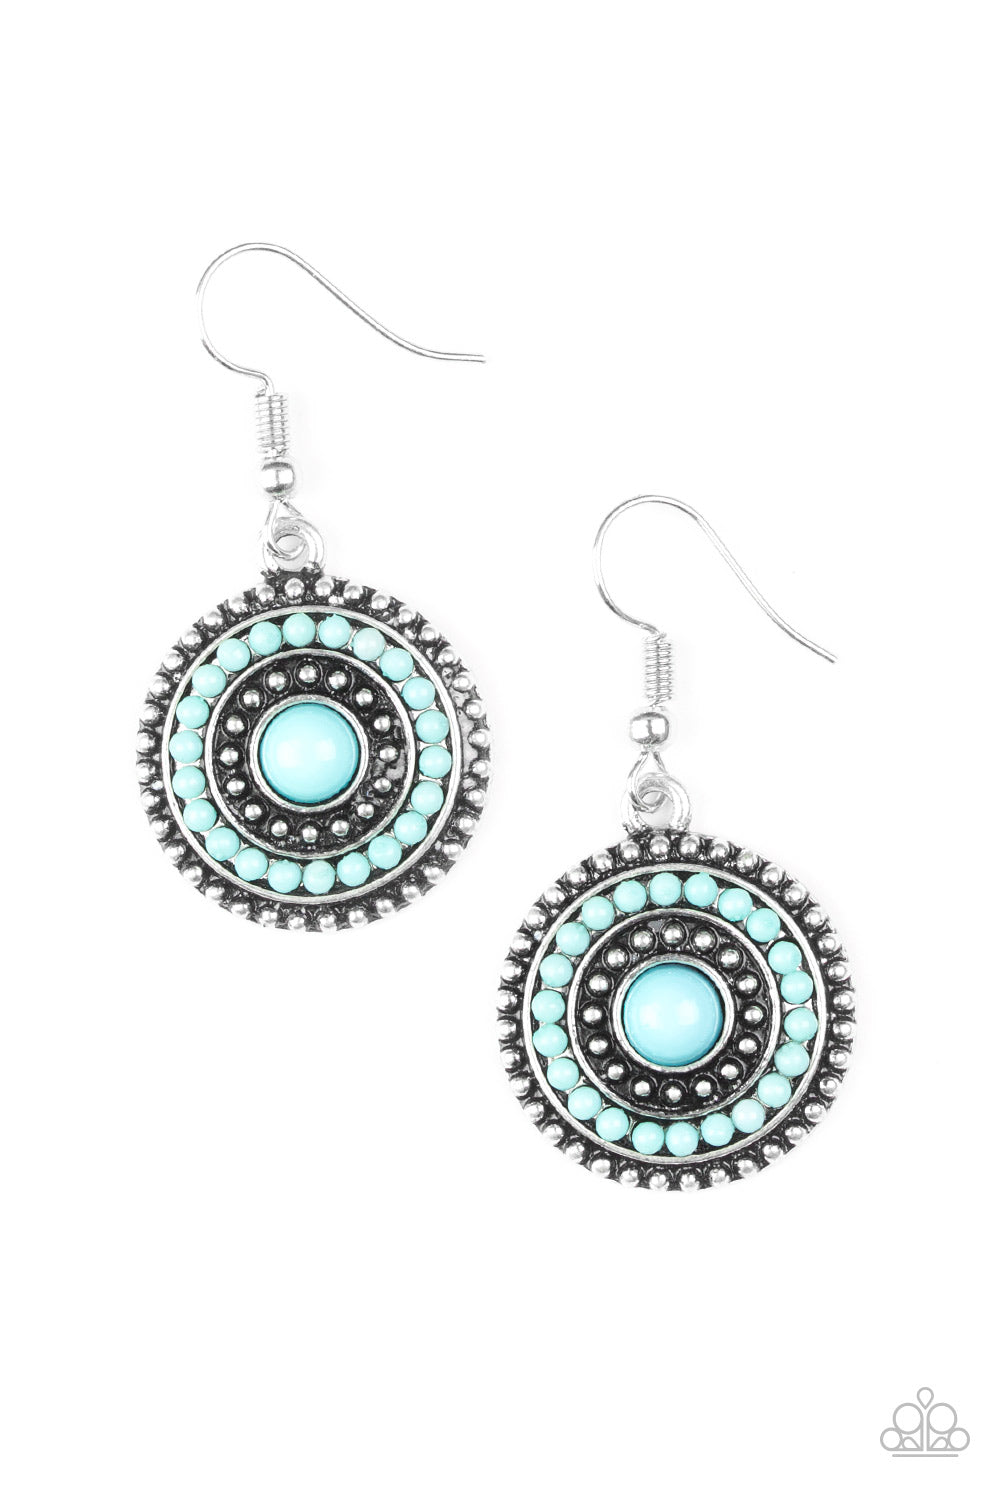 Paparazzi Accessories - Paparazzi Earring - Rainbow Riviera - Blue - Earrings